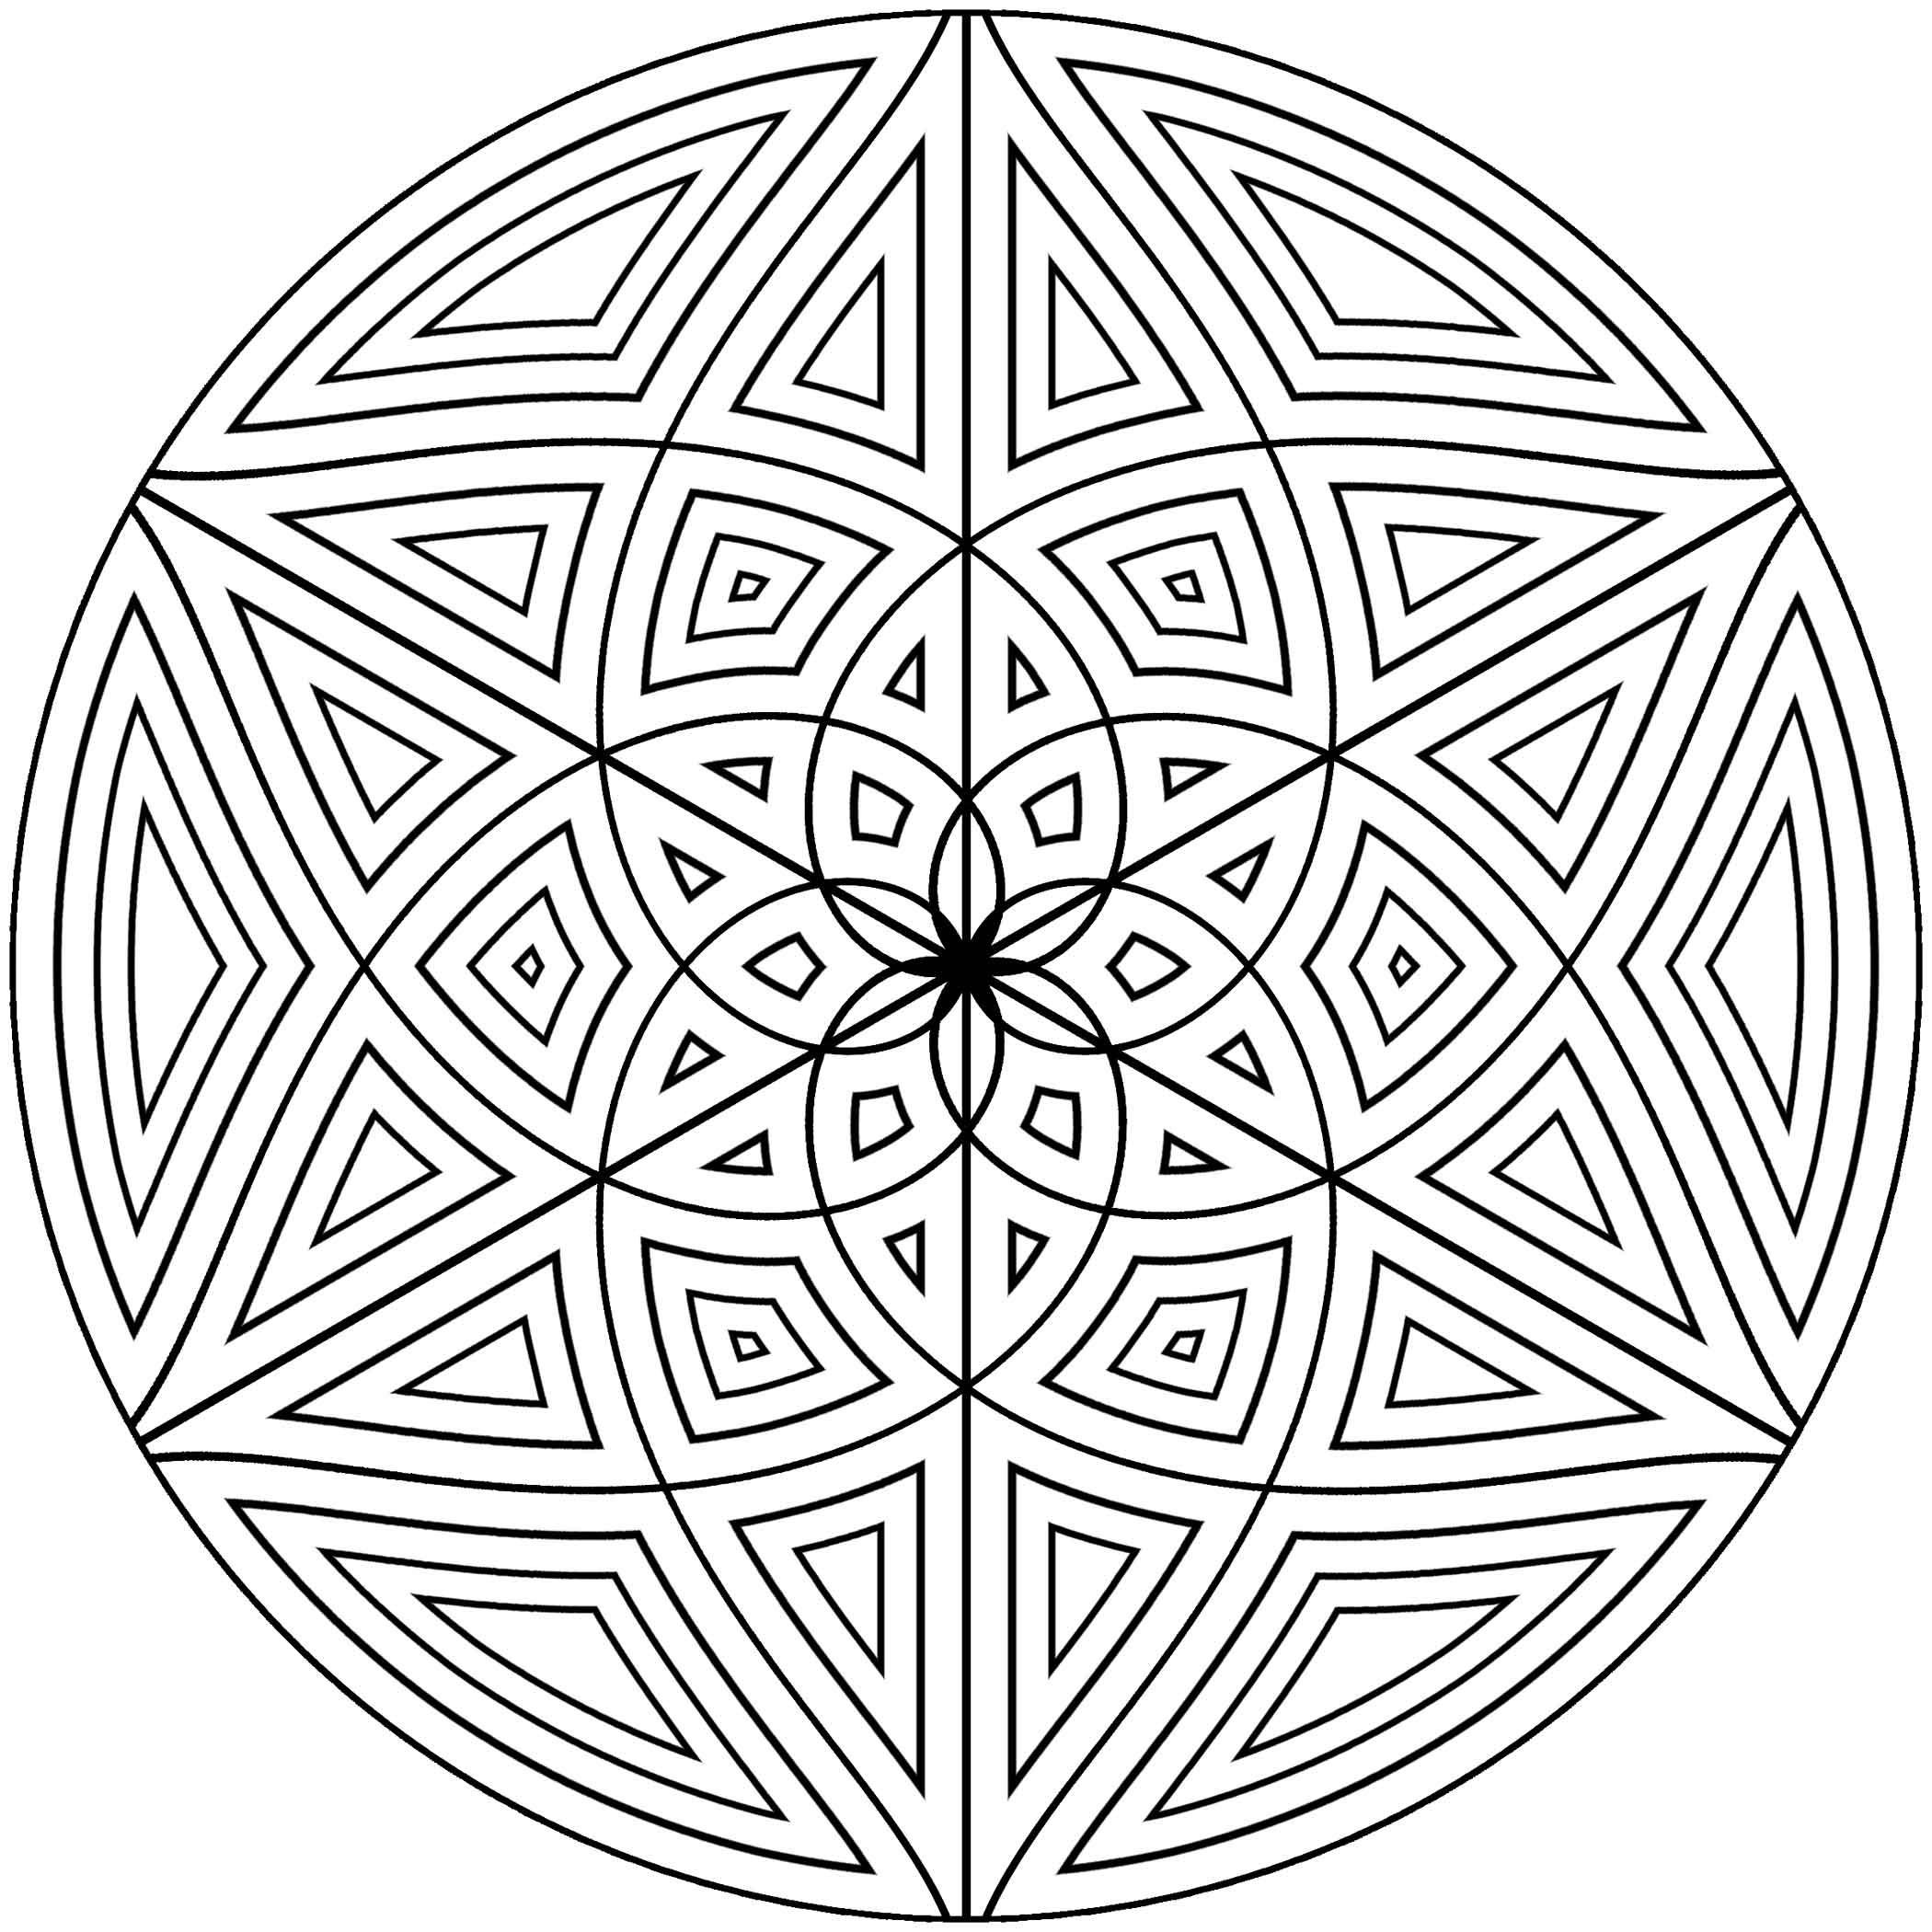 patterns to color in flower pattern coloring pages coloring home to patterns in color